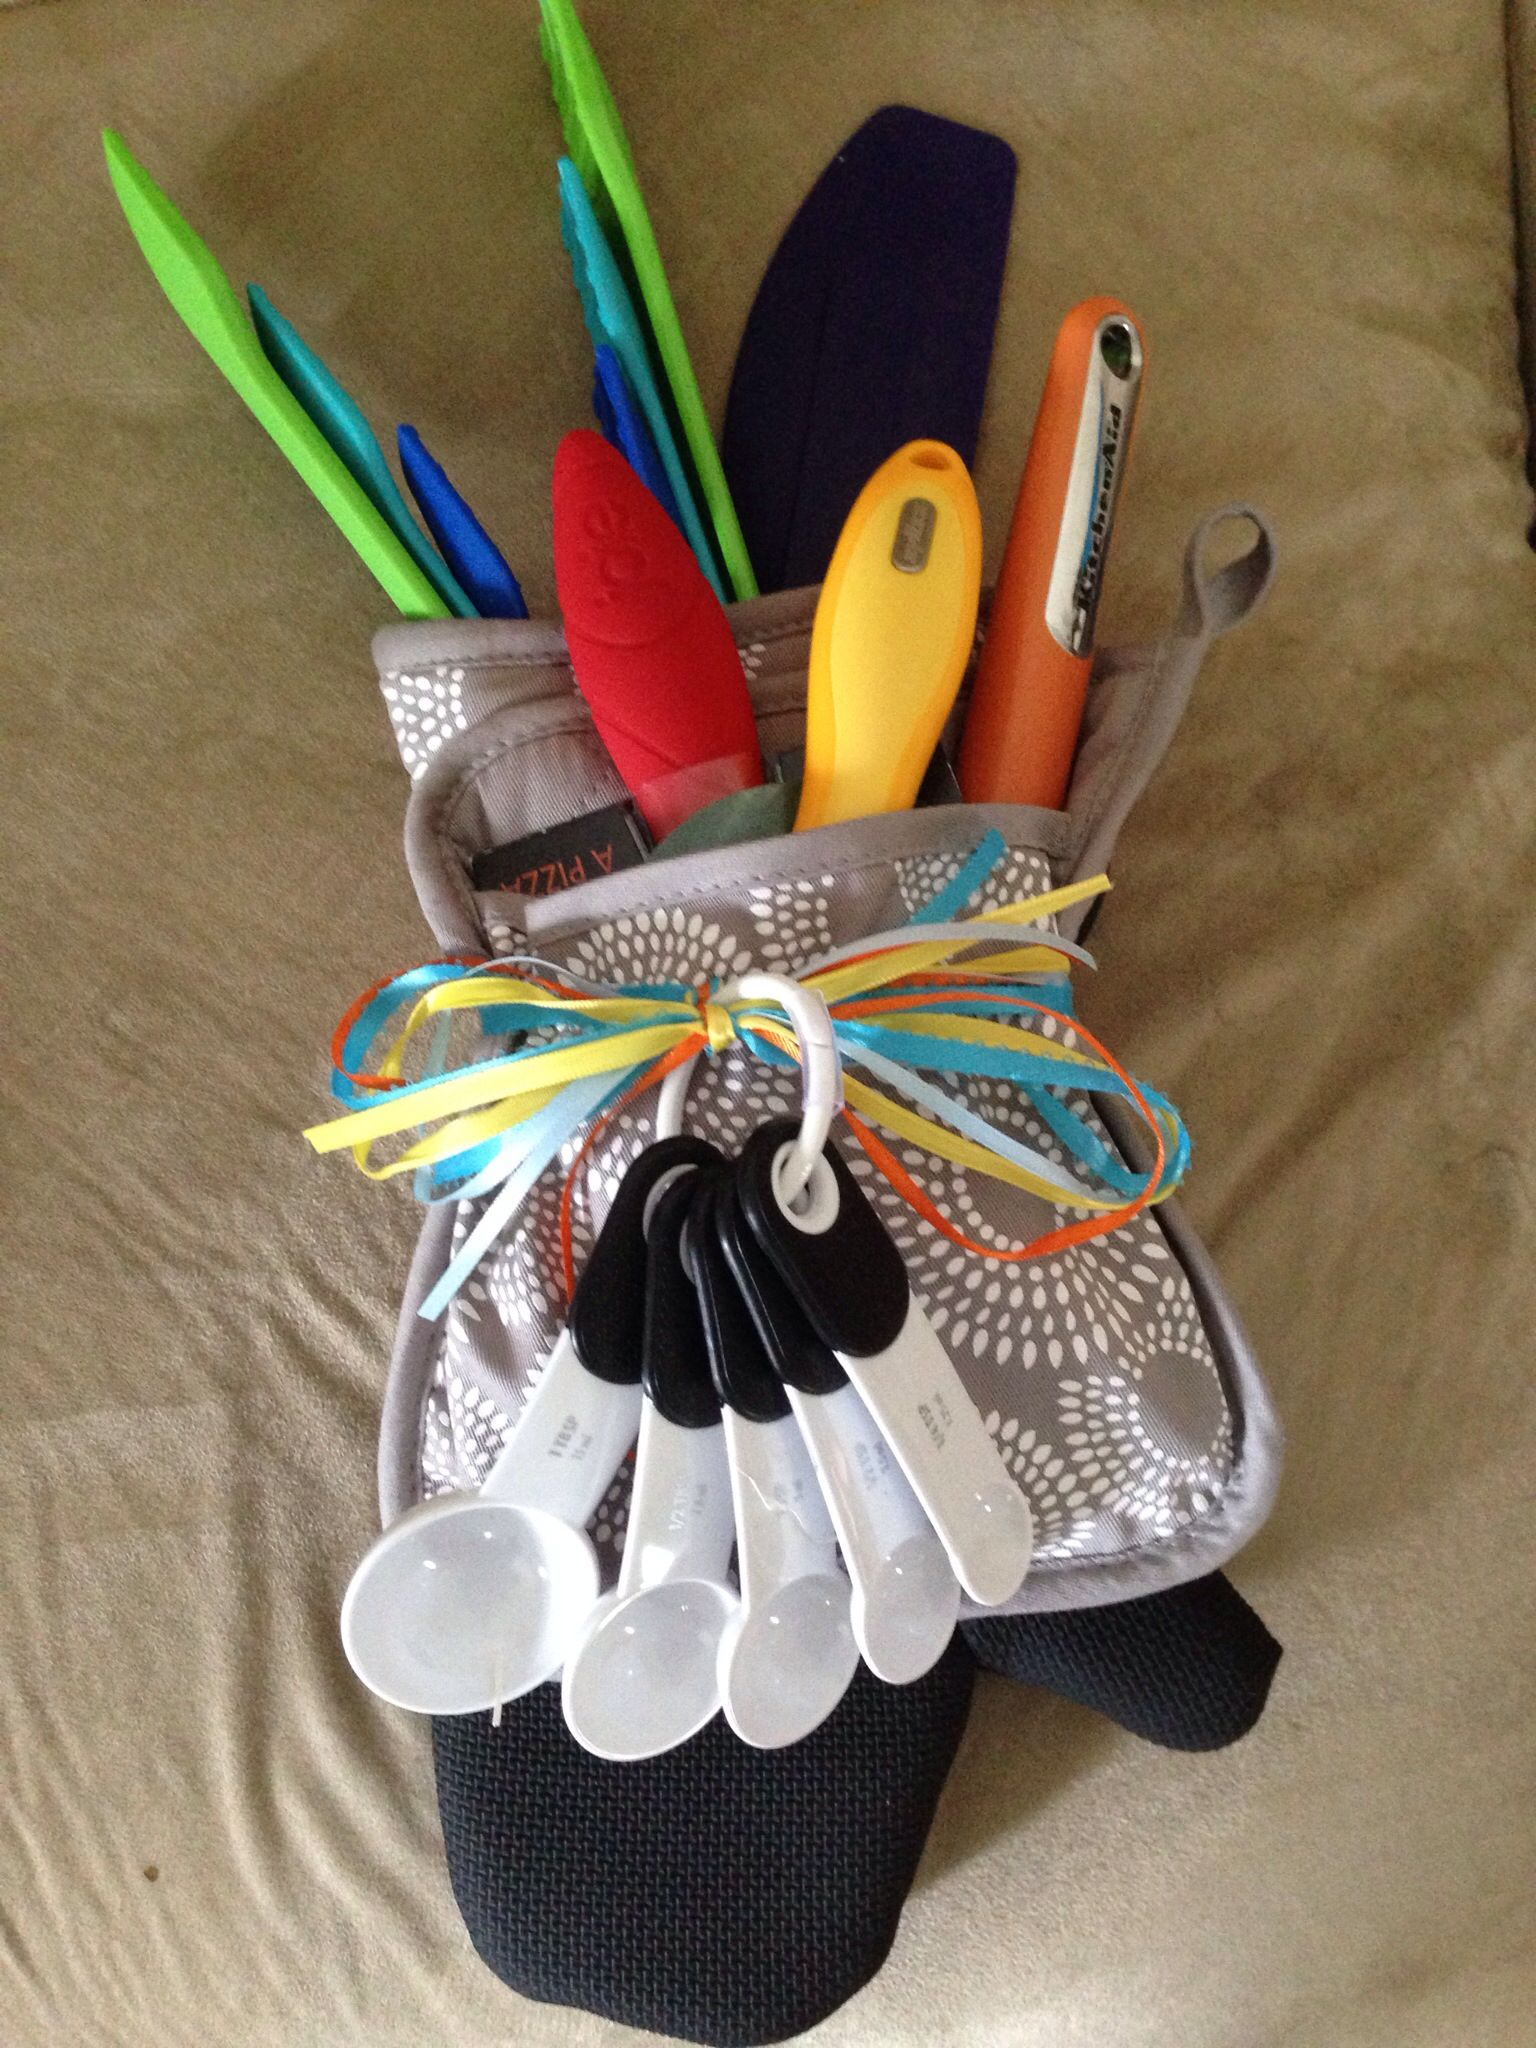 Utensils and kitchen gadgets in a potholder and oven mitt for a ...